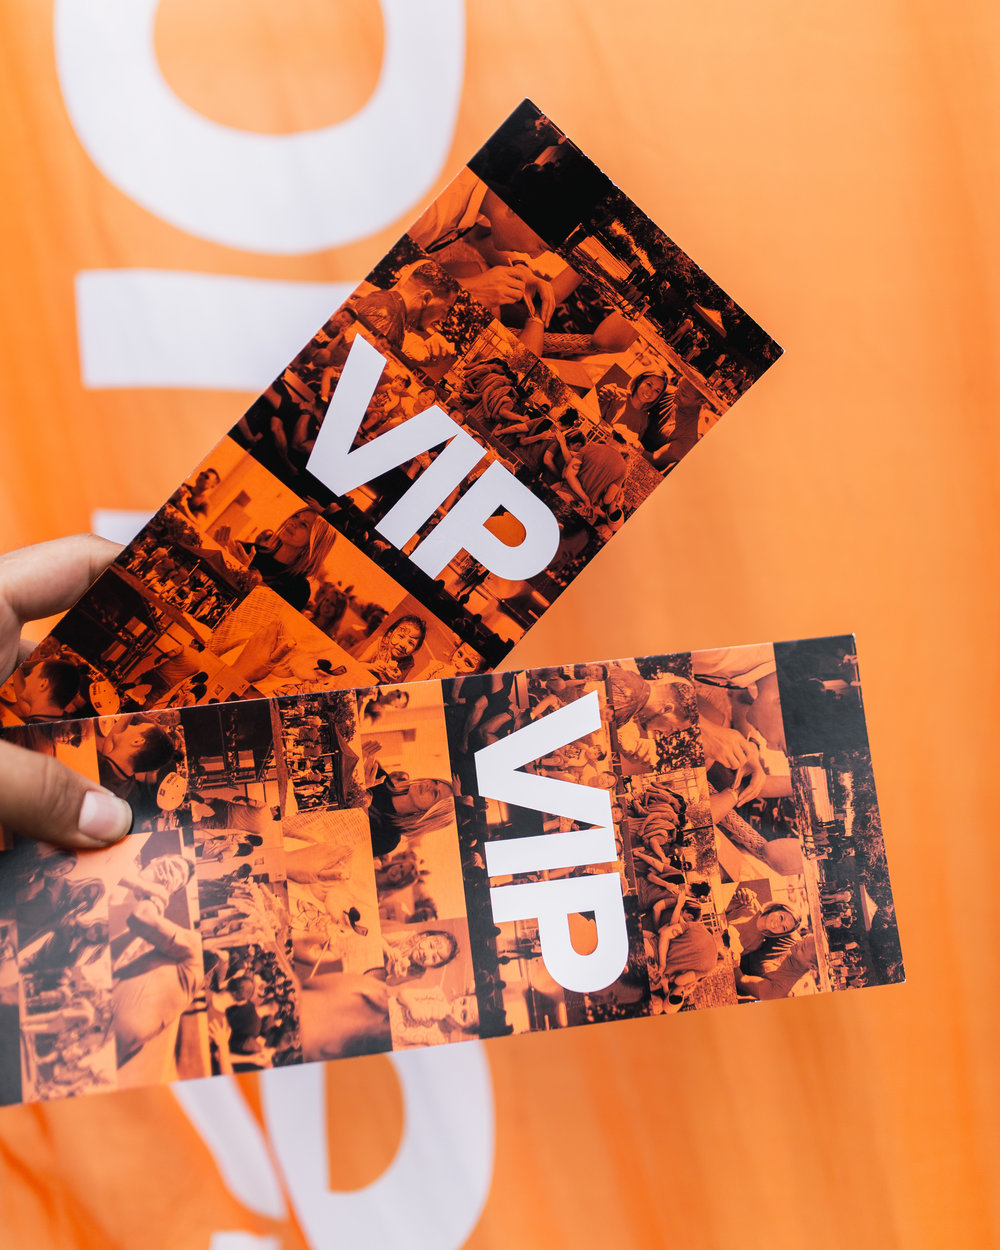 First Time? - You're Our VIP! Here's what you can expect when you visit our church.